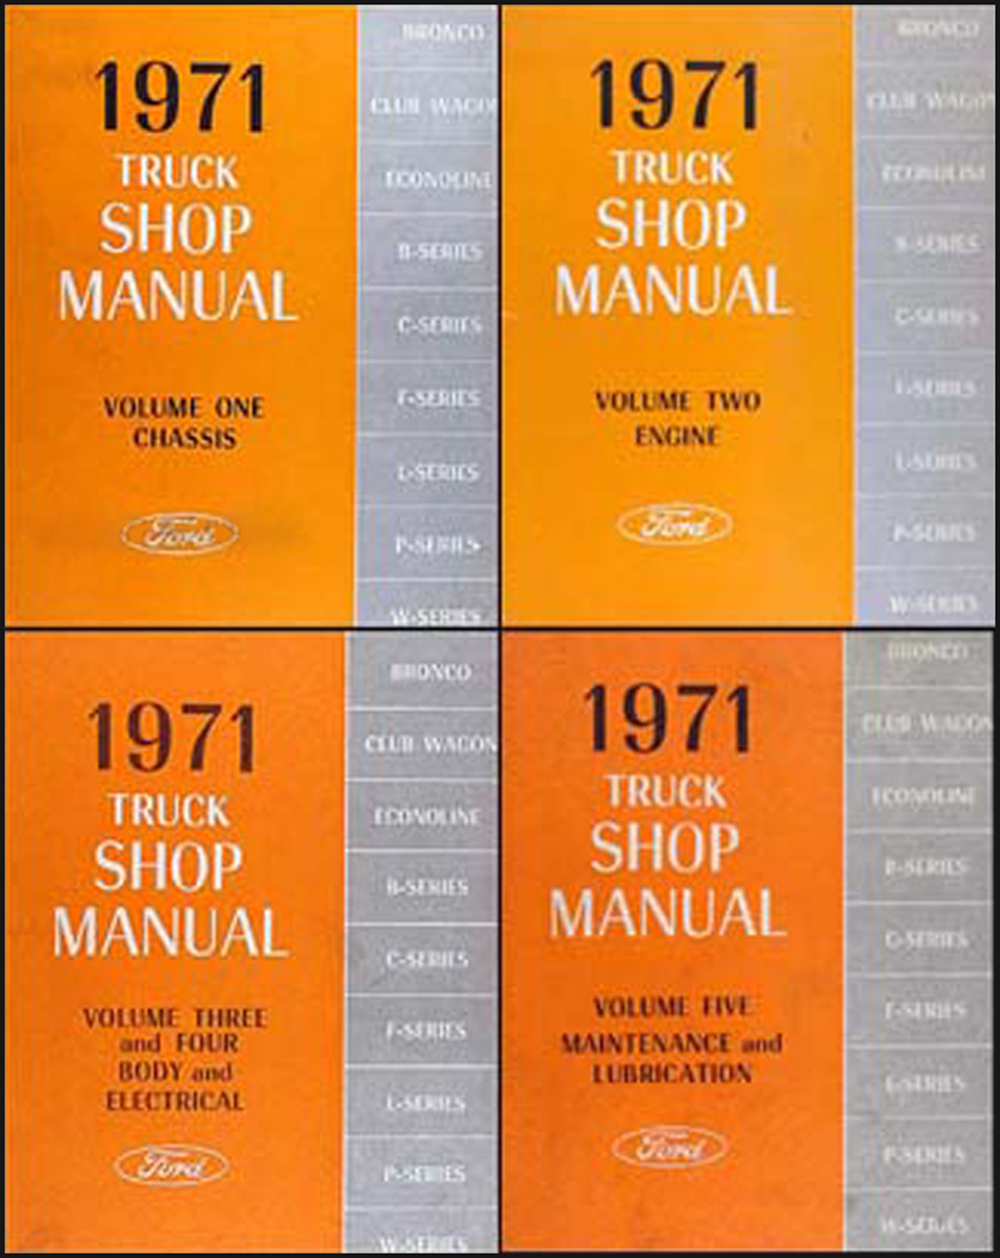 1971 Ford Truck Repair Shop Manual Original 5 Volume Set Pickup Van Bronco Big Trk